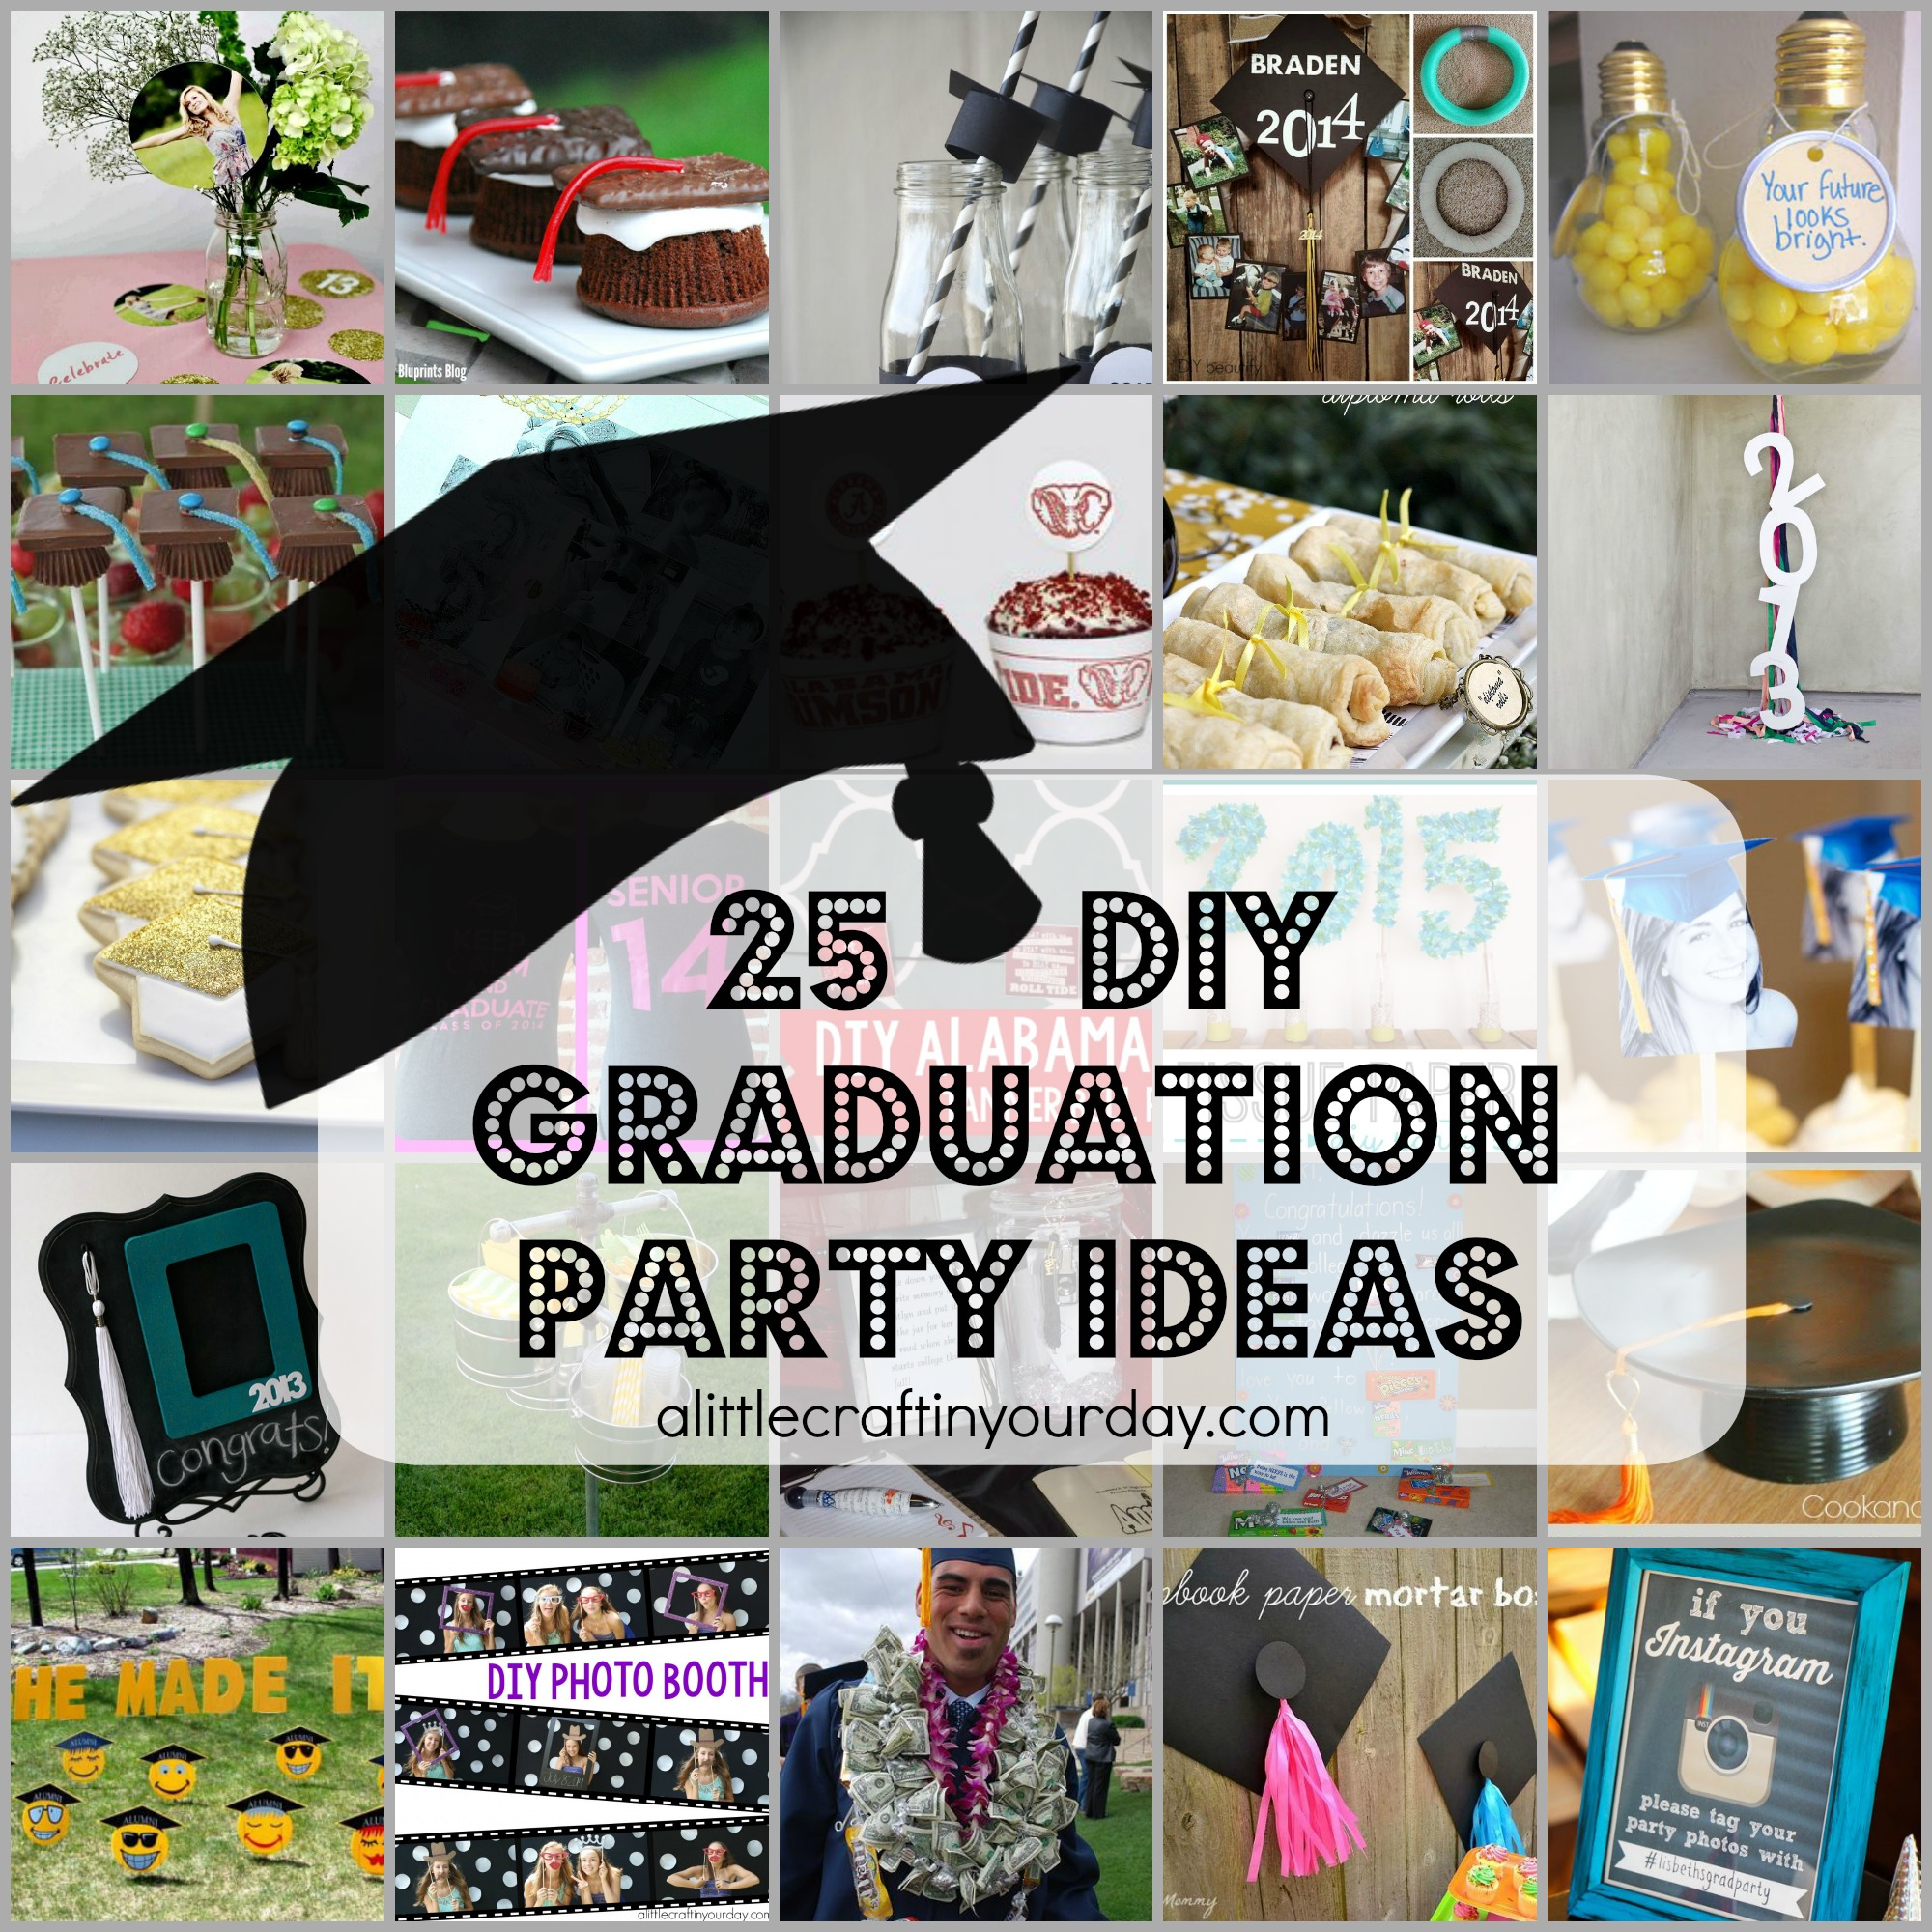 graduation pictures ideas 2015 - 25 DIY Graduation Party Ideas A Little Craft In Your Day